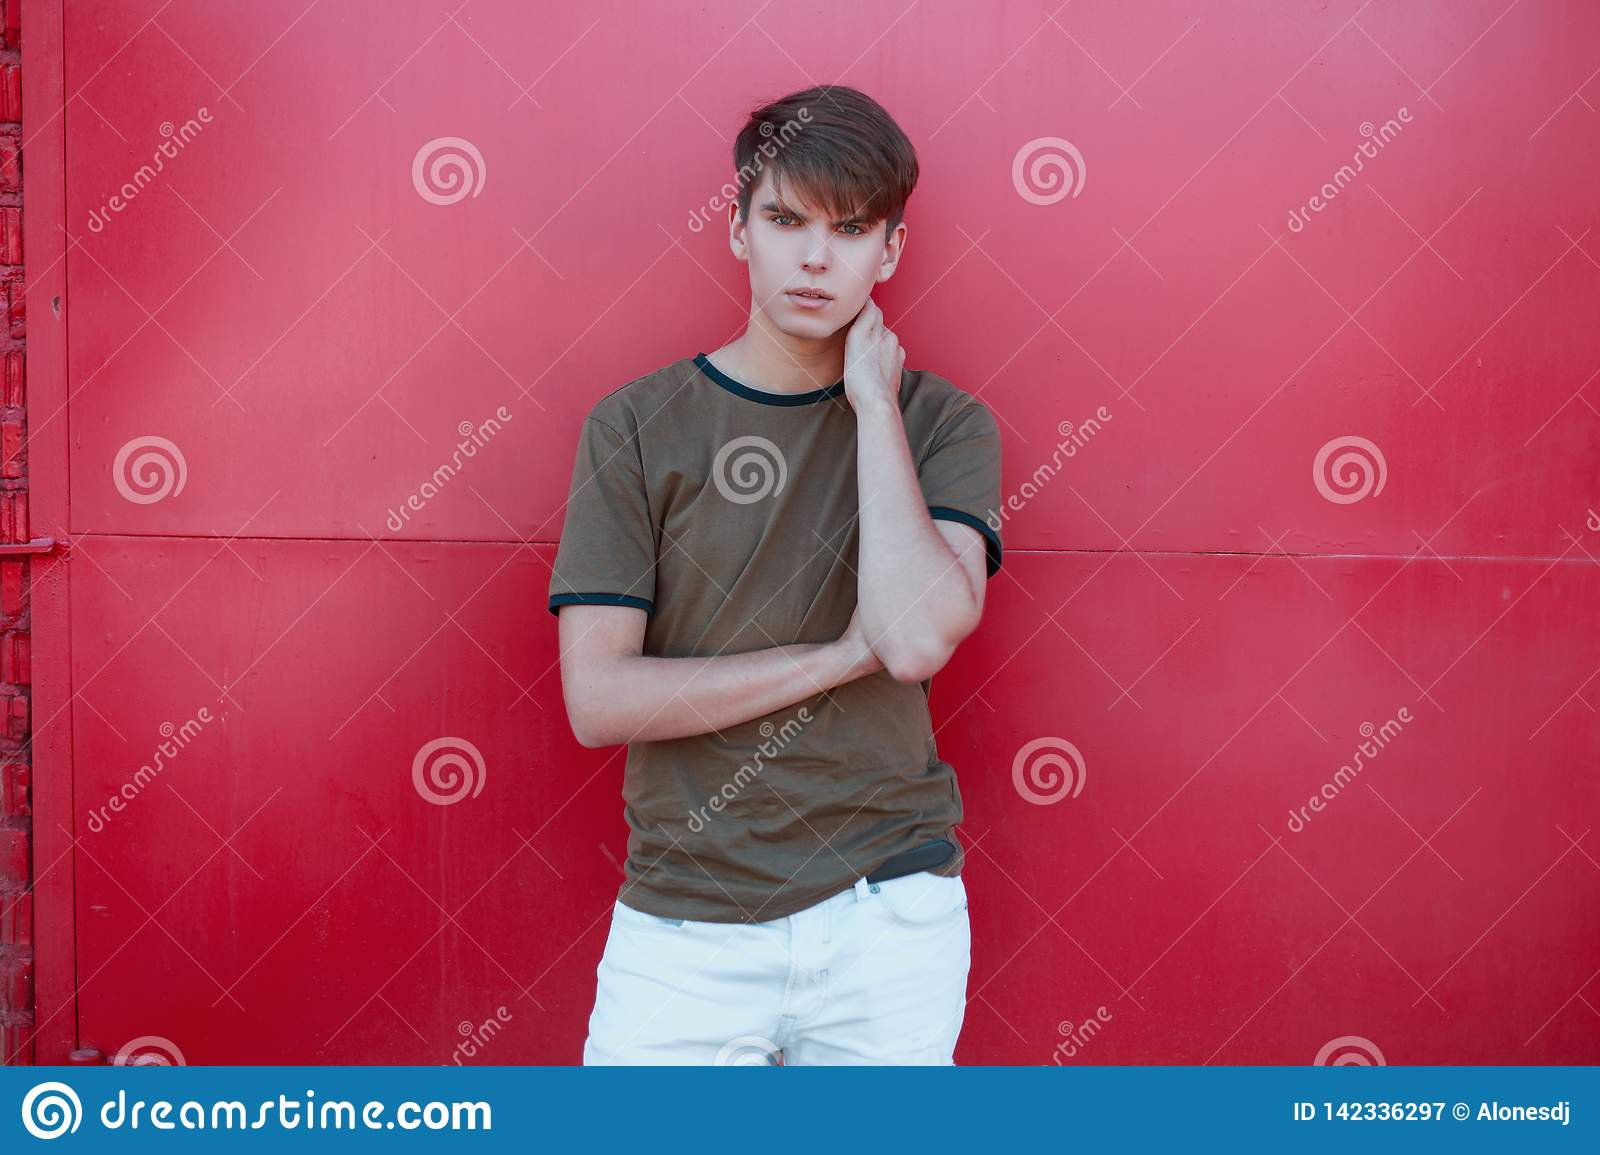 Cool handsome young man with a stylish hairstyle in a trendy green t-shirt in white trousers near the bright pink metal wall